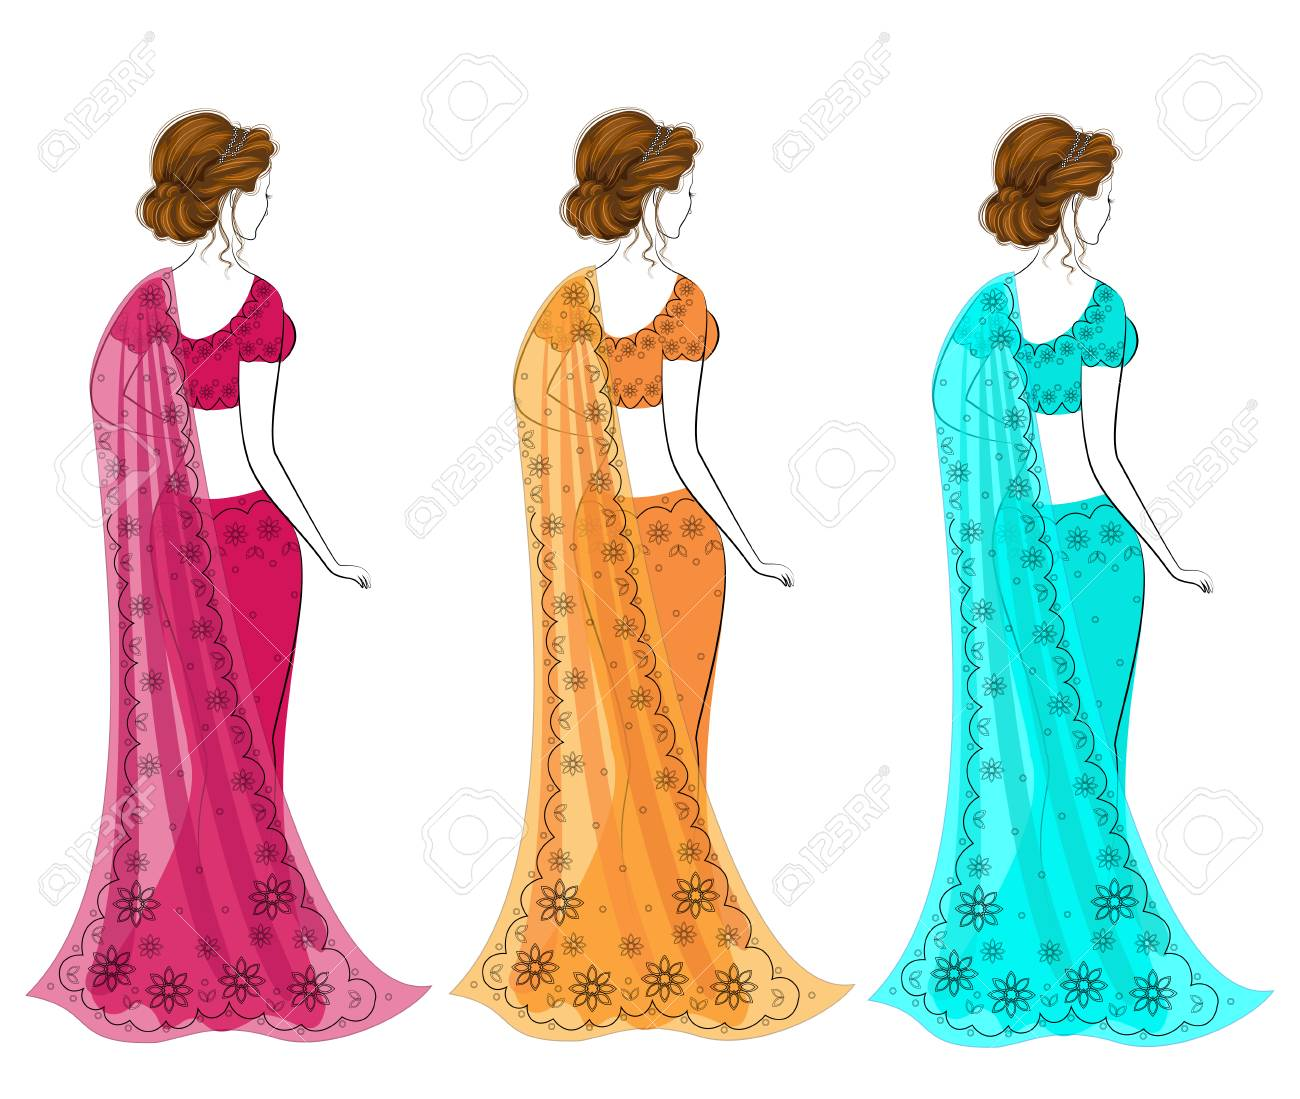 8853f5ee67 Silhouette of lovely ladies. The girls are dressed in saris, traditional  Indian